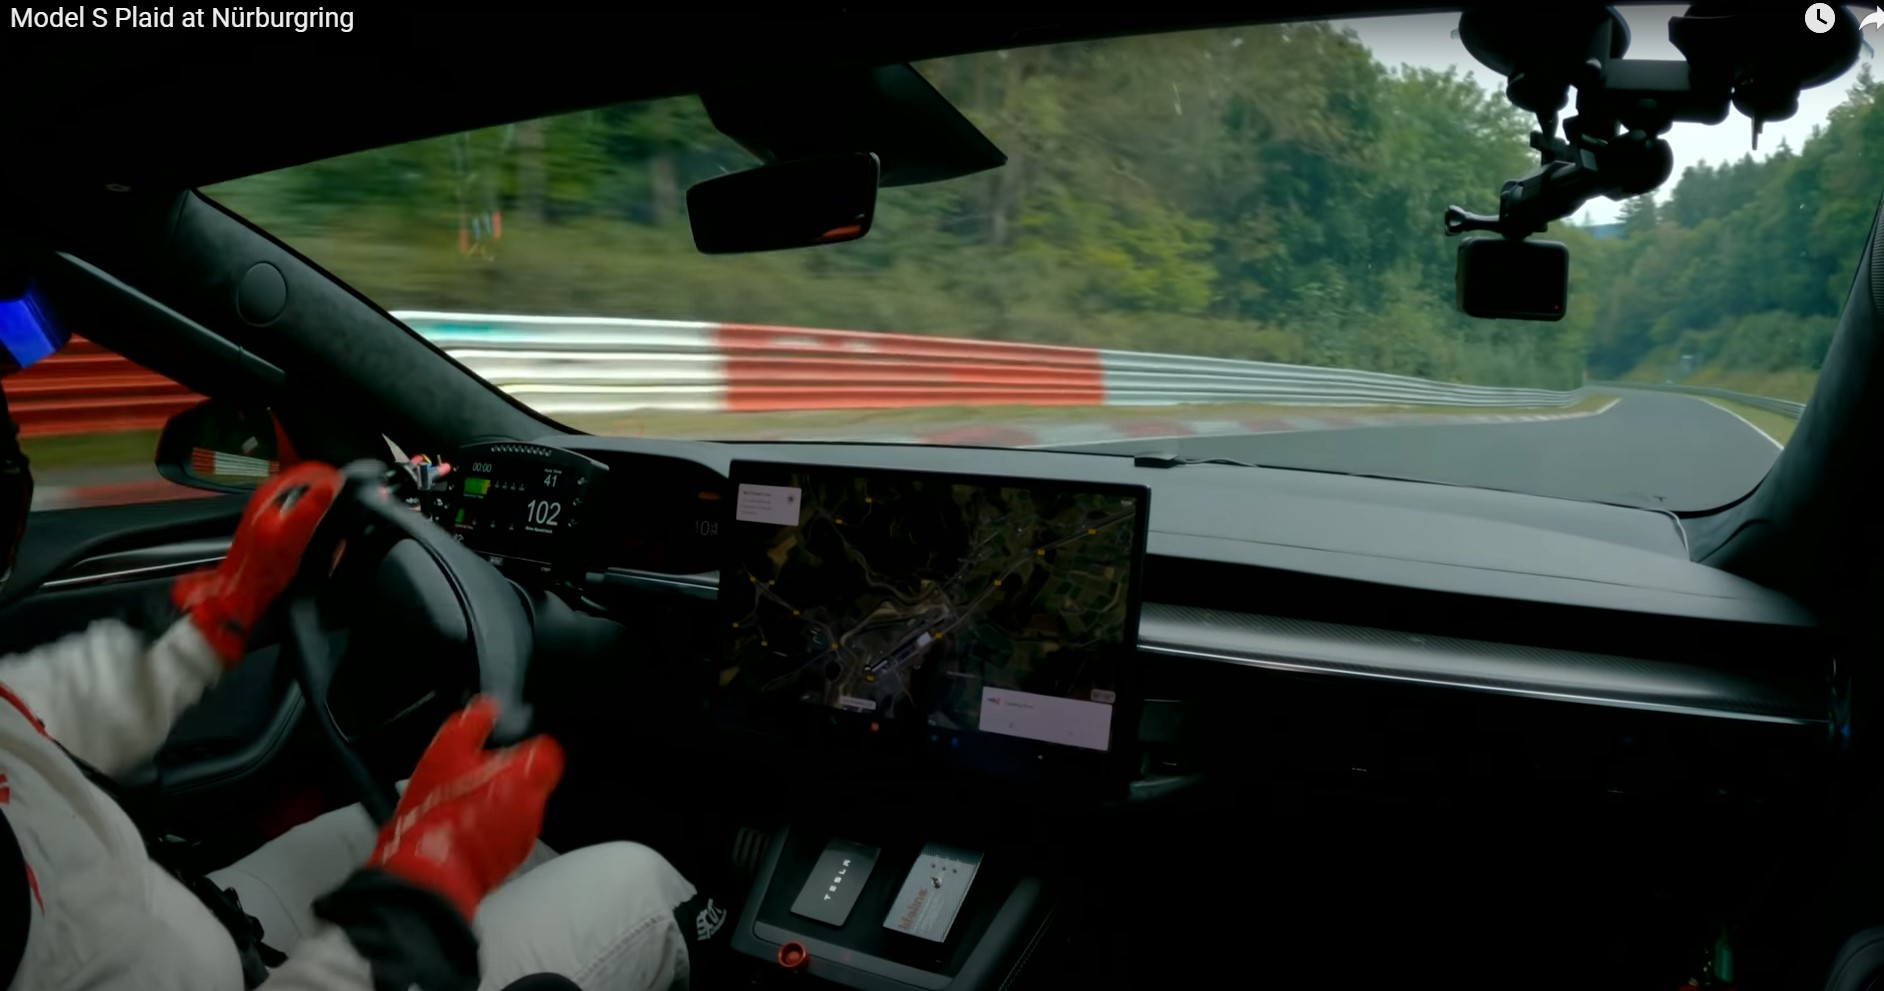 Tesla Plaid sets an EV record at the Nurburgring – compared to Porsche Taycan and BMW M5